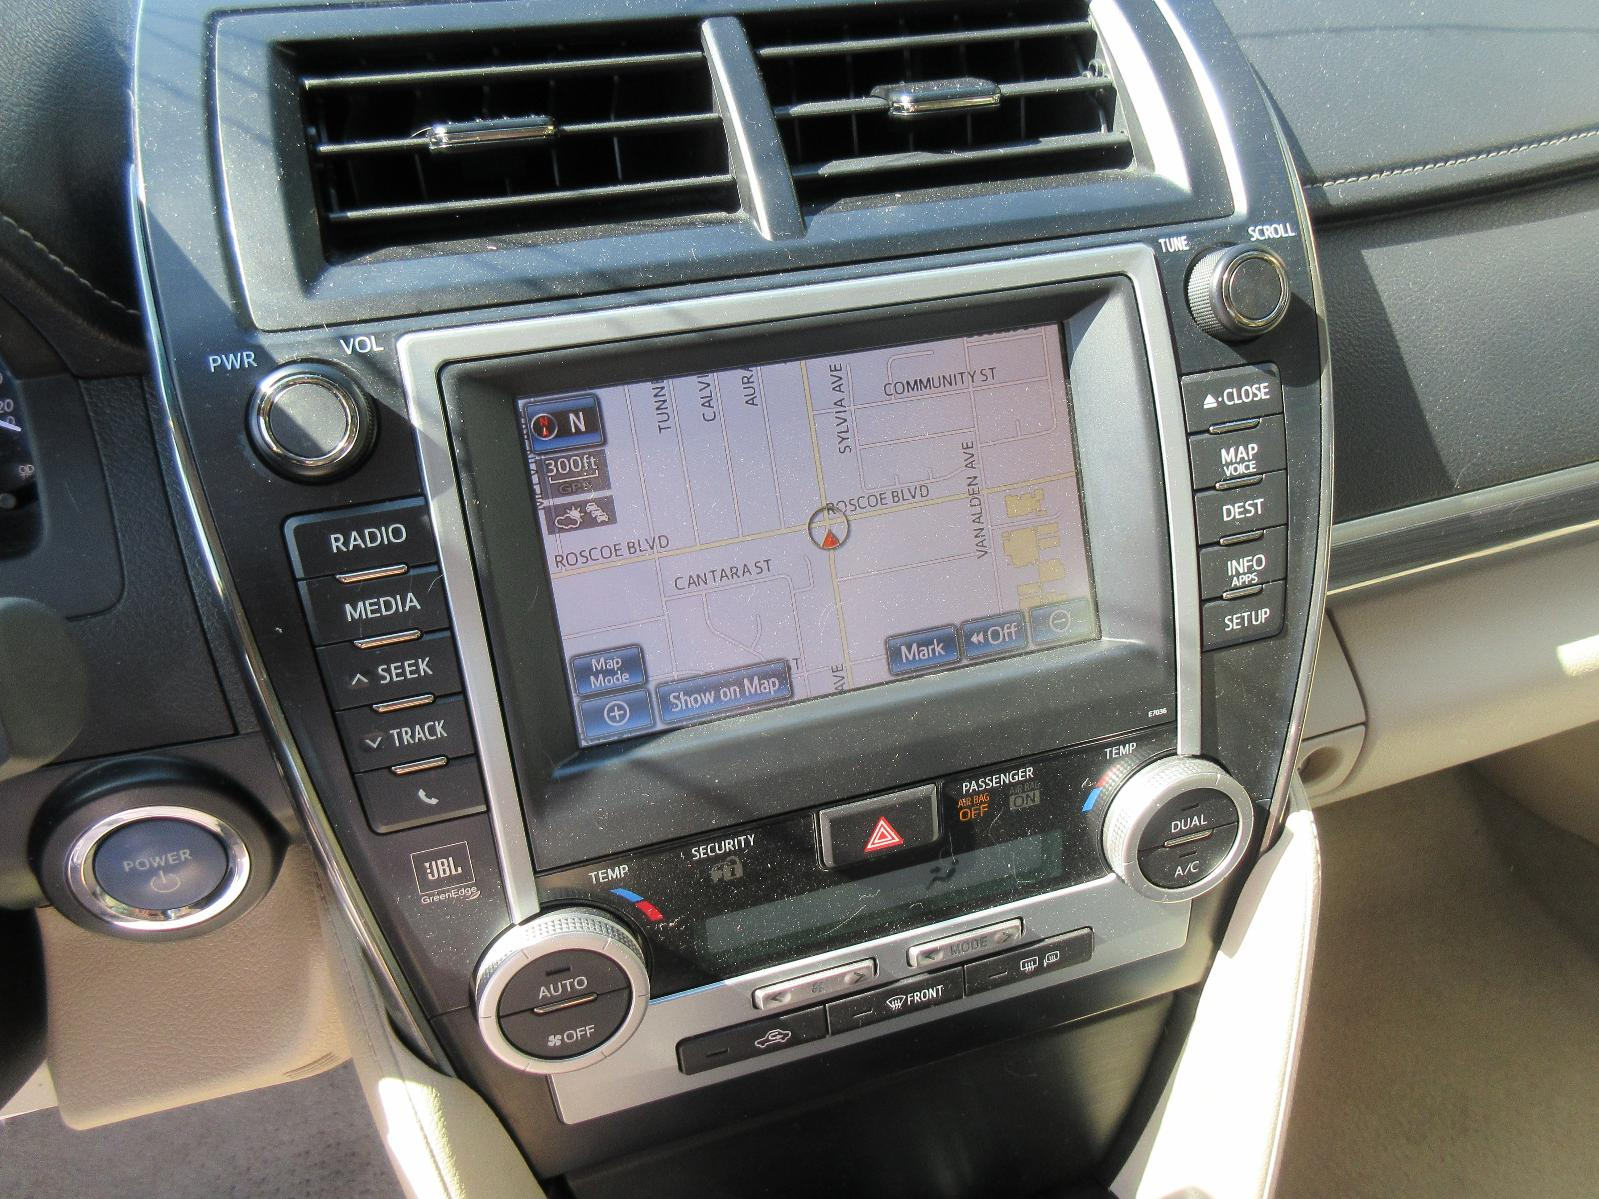 Used Audio Visual System  Radio  For Sale For A 2014 Toyota Camry